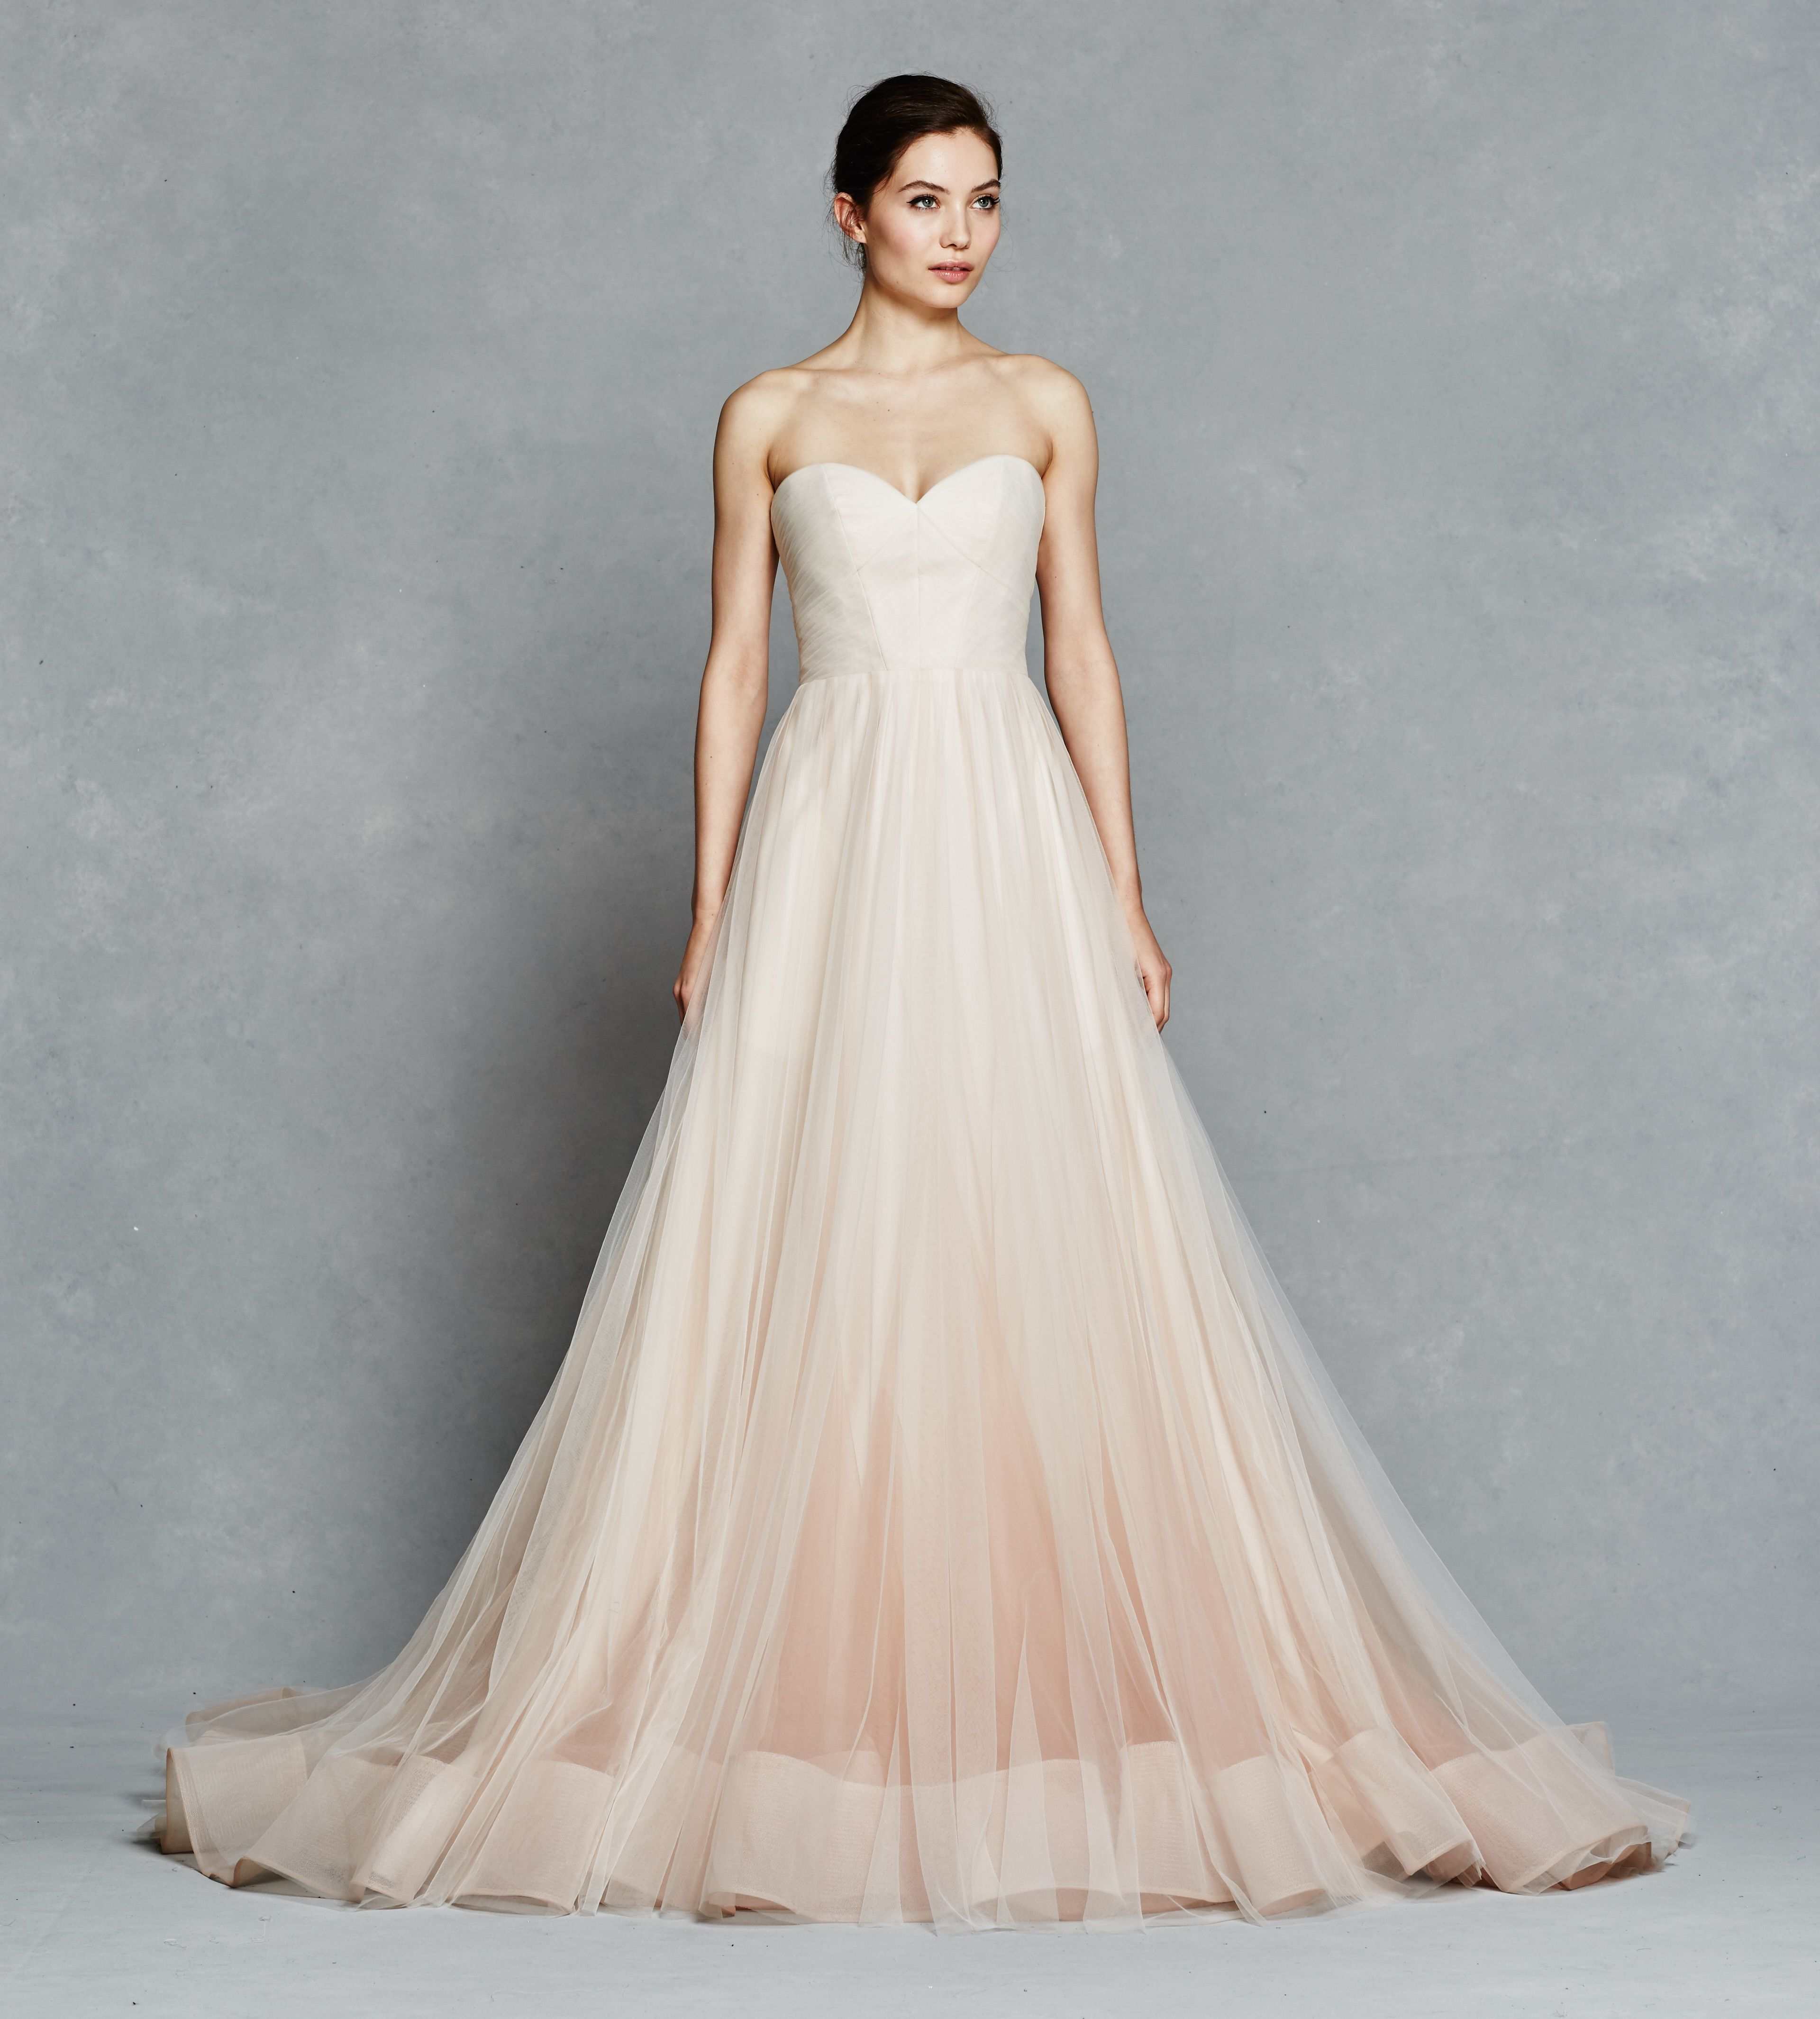 The bustle wedding dresses  Kelly Faetanini Spring  Florence Available at Lace u Bustle